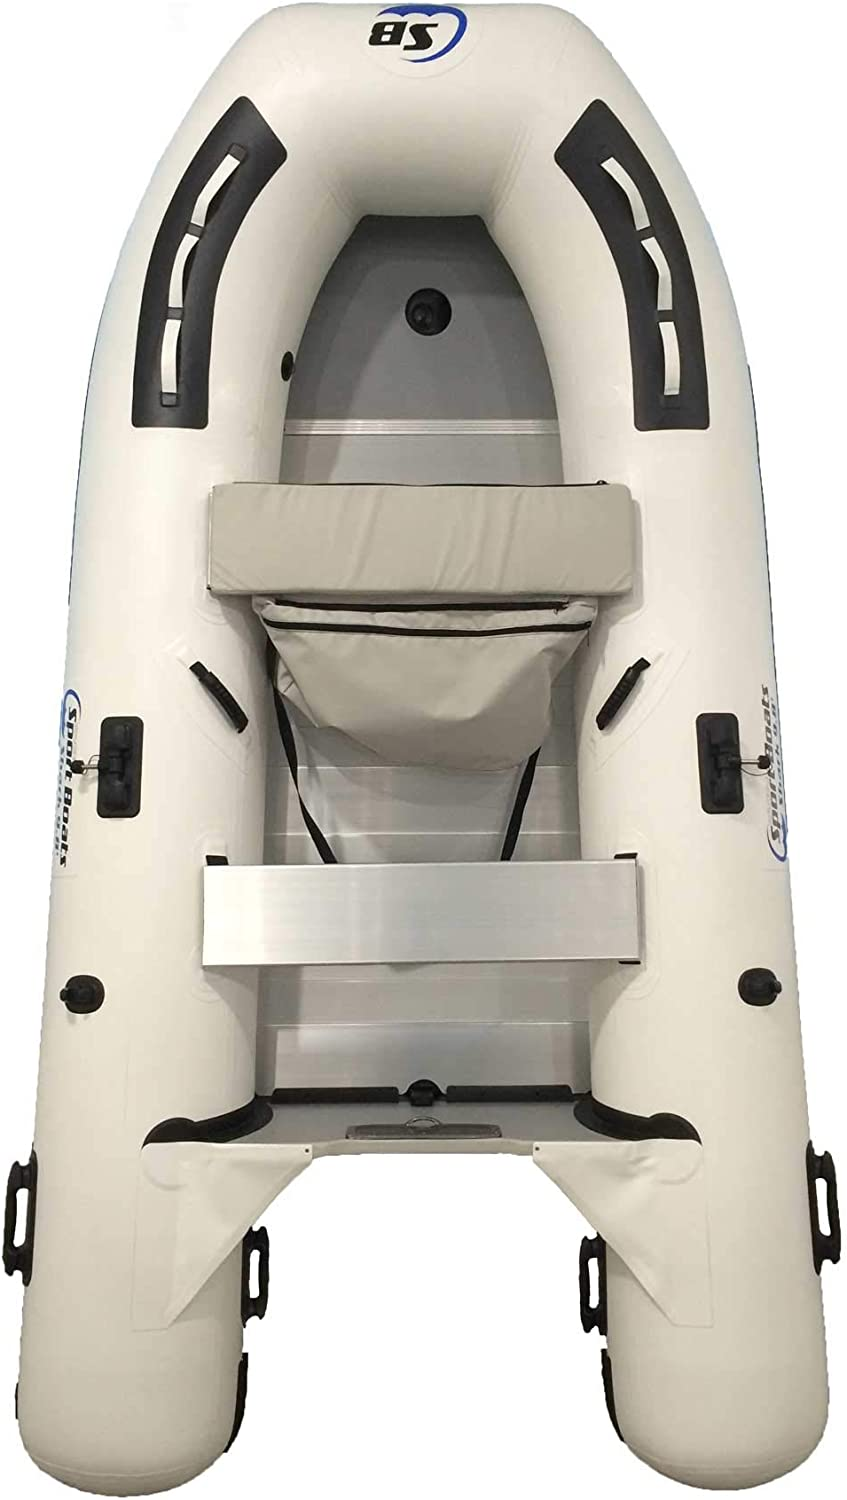 61M2eo6M6TL. AC SL1500 Inflatable Sports Boats Review